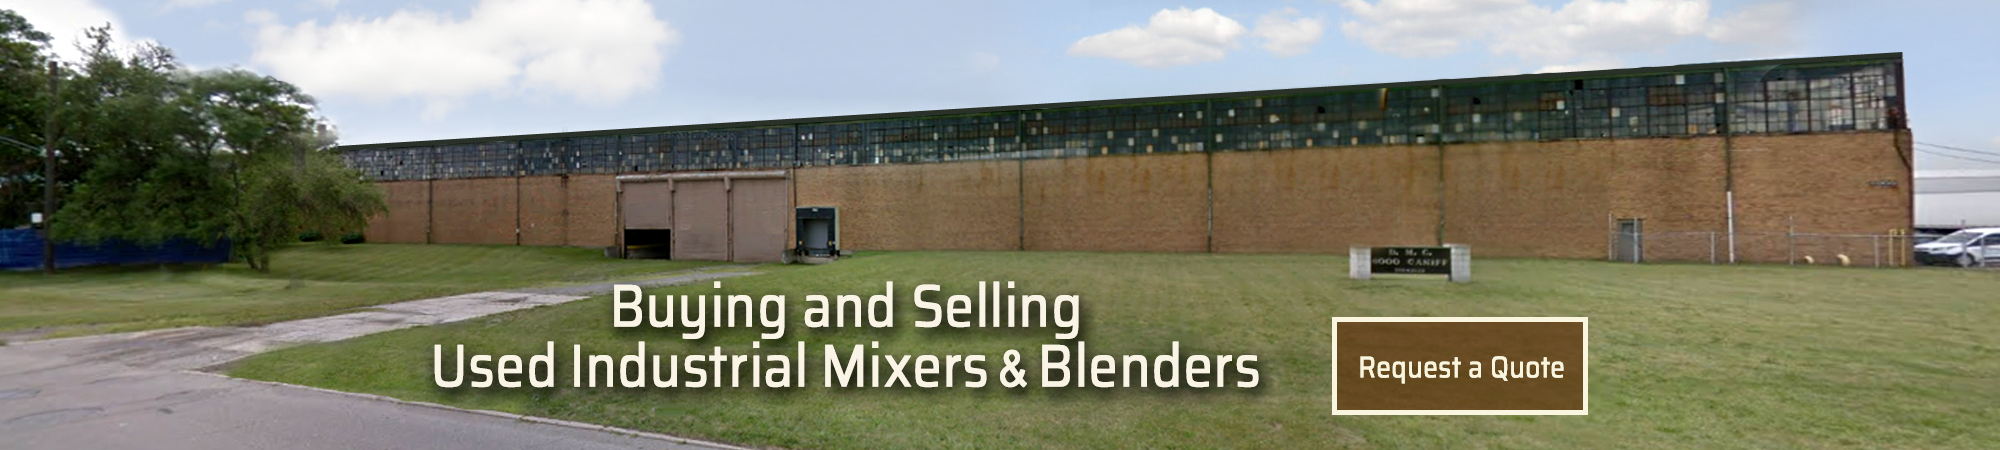 Buy or Sell Mixers and Blenders